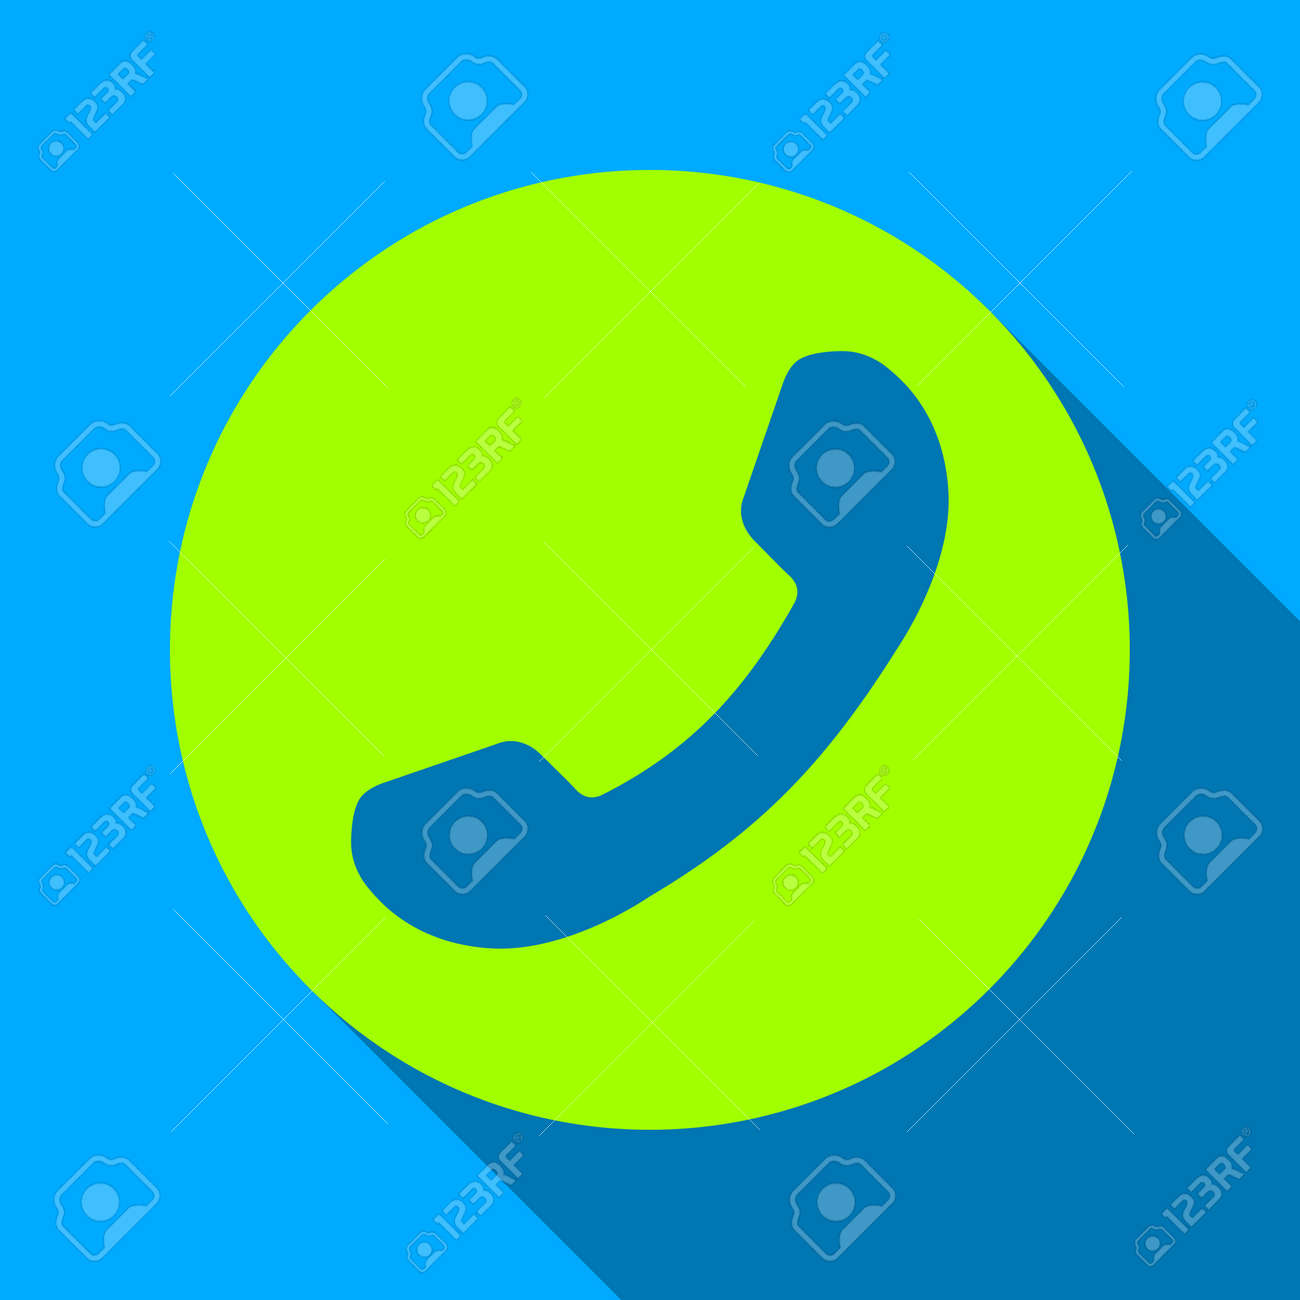 Phone Number Long Shadow Vector Icon Style Is A Flat Light Symbol